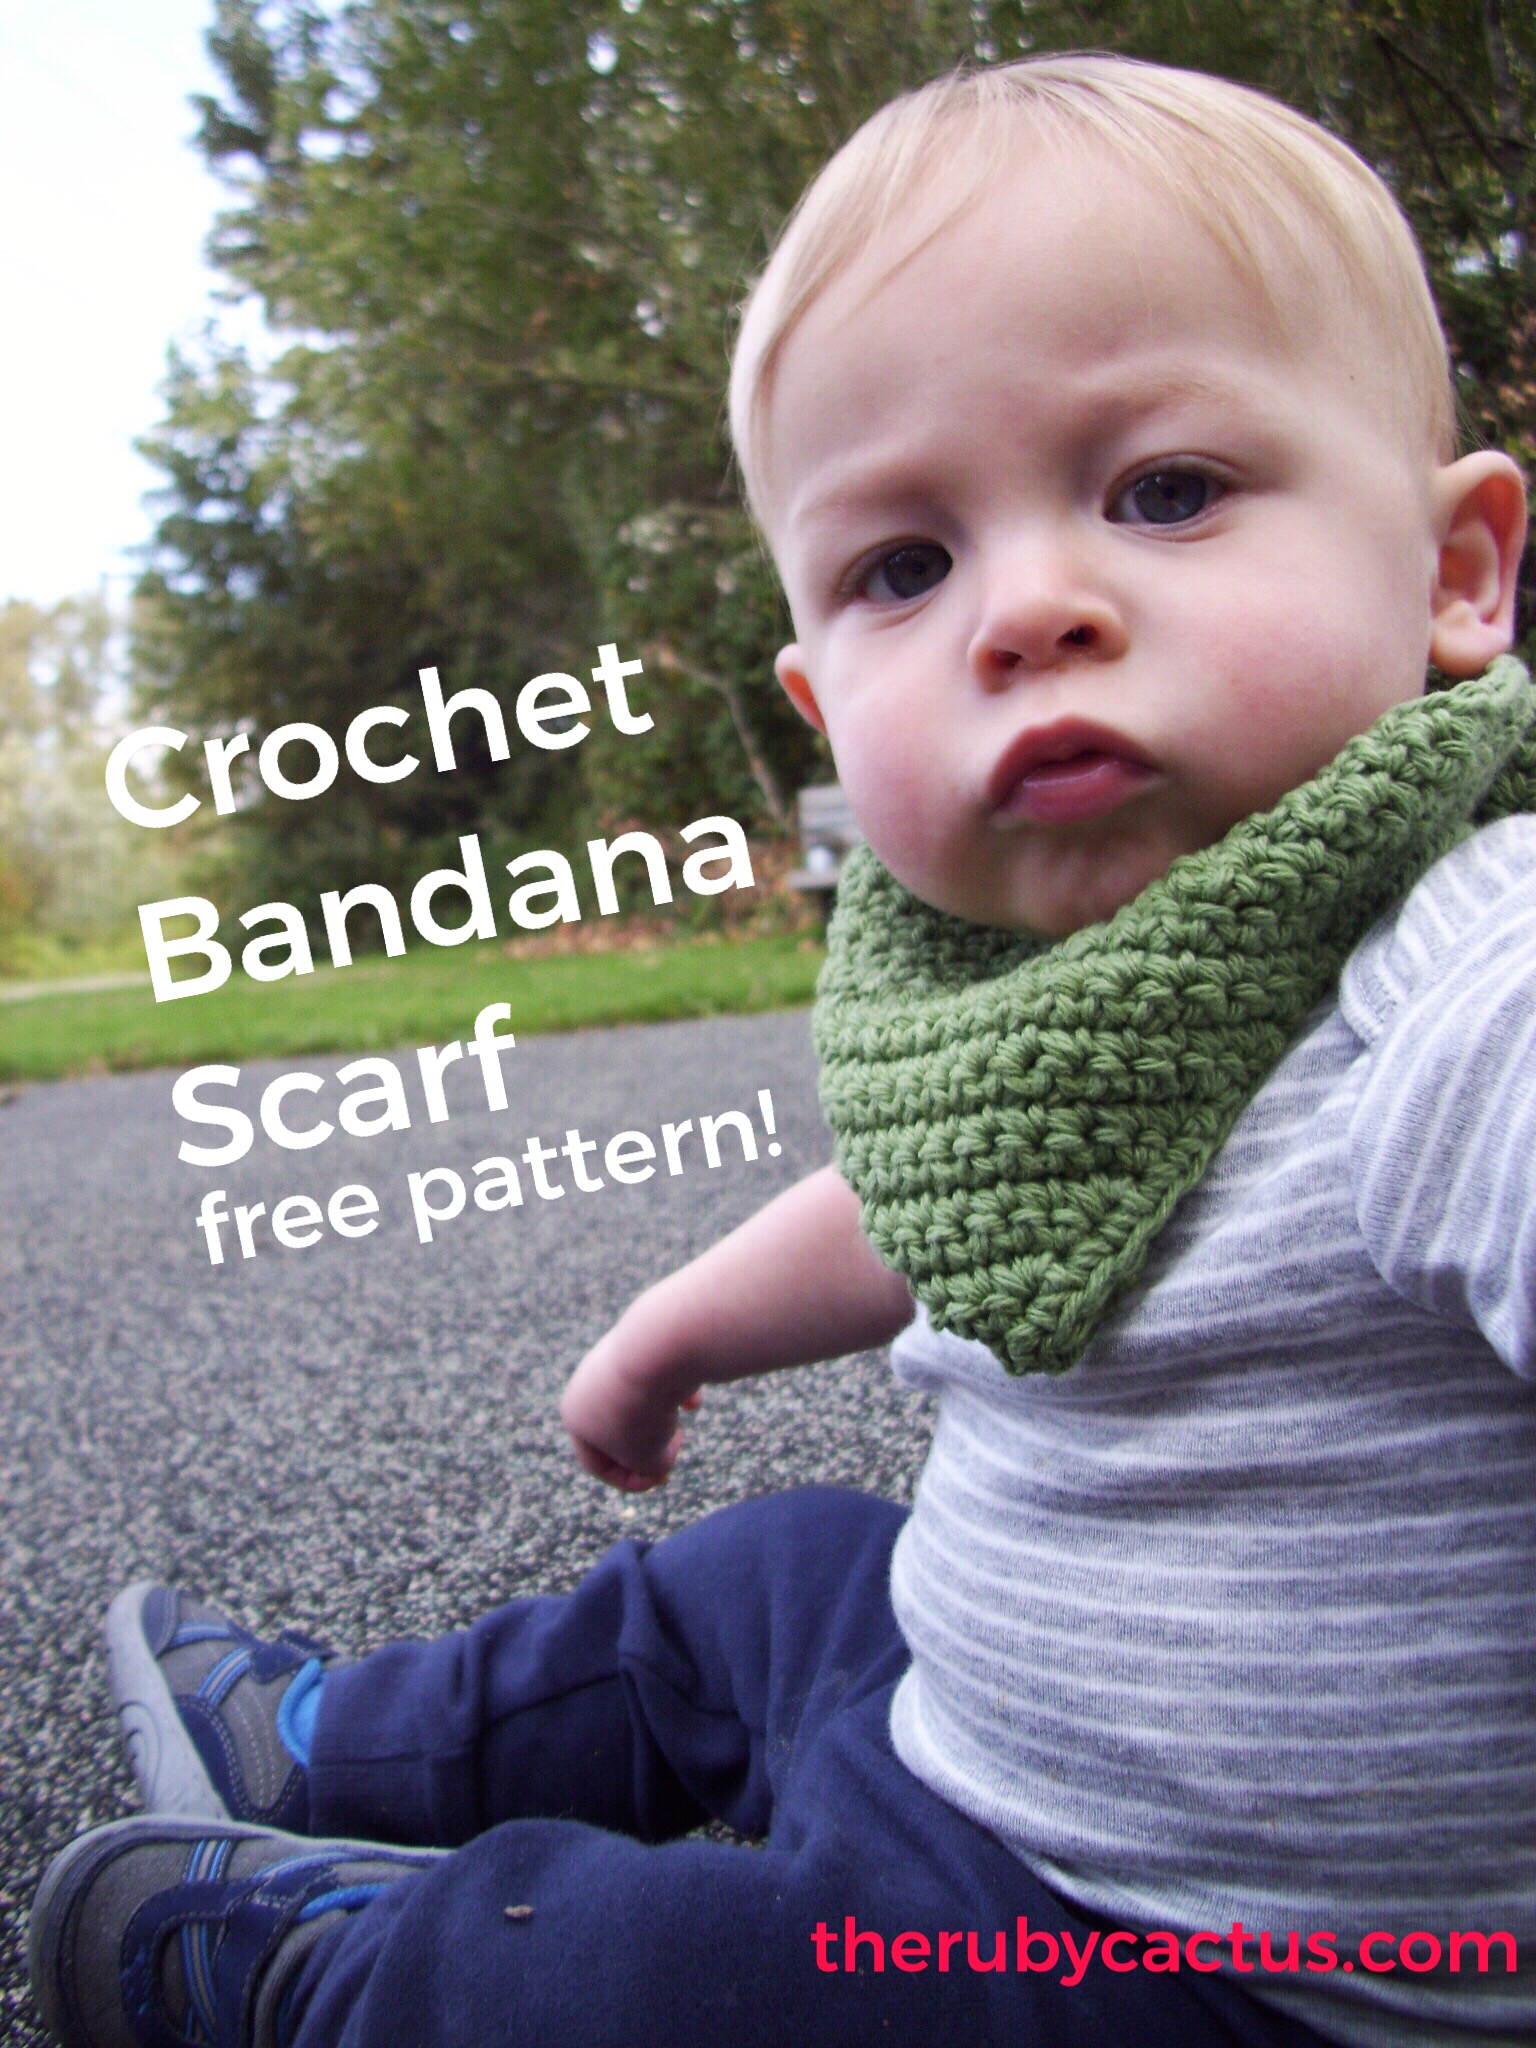 Crochet Baby Bandana Scarf – FREE PATTERN – the ruby cactus